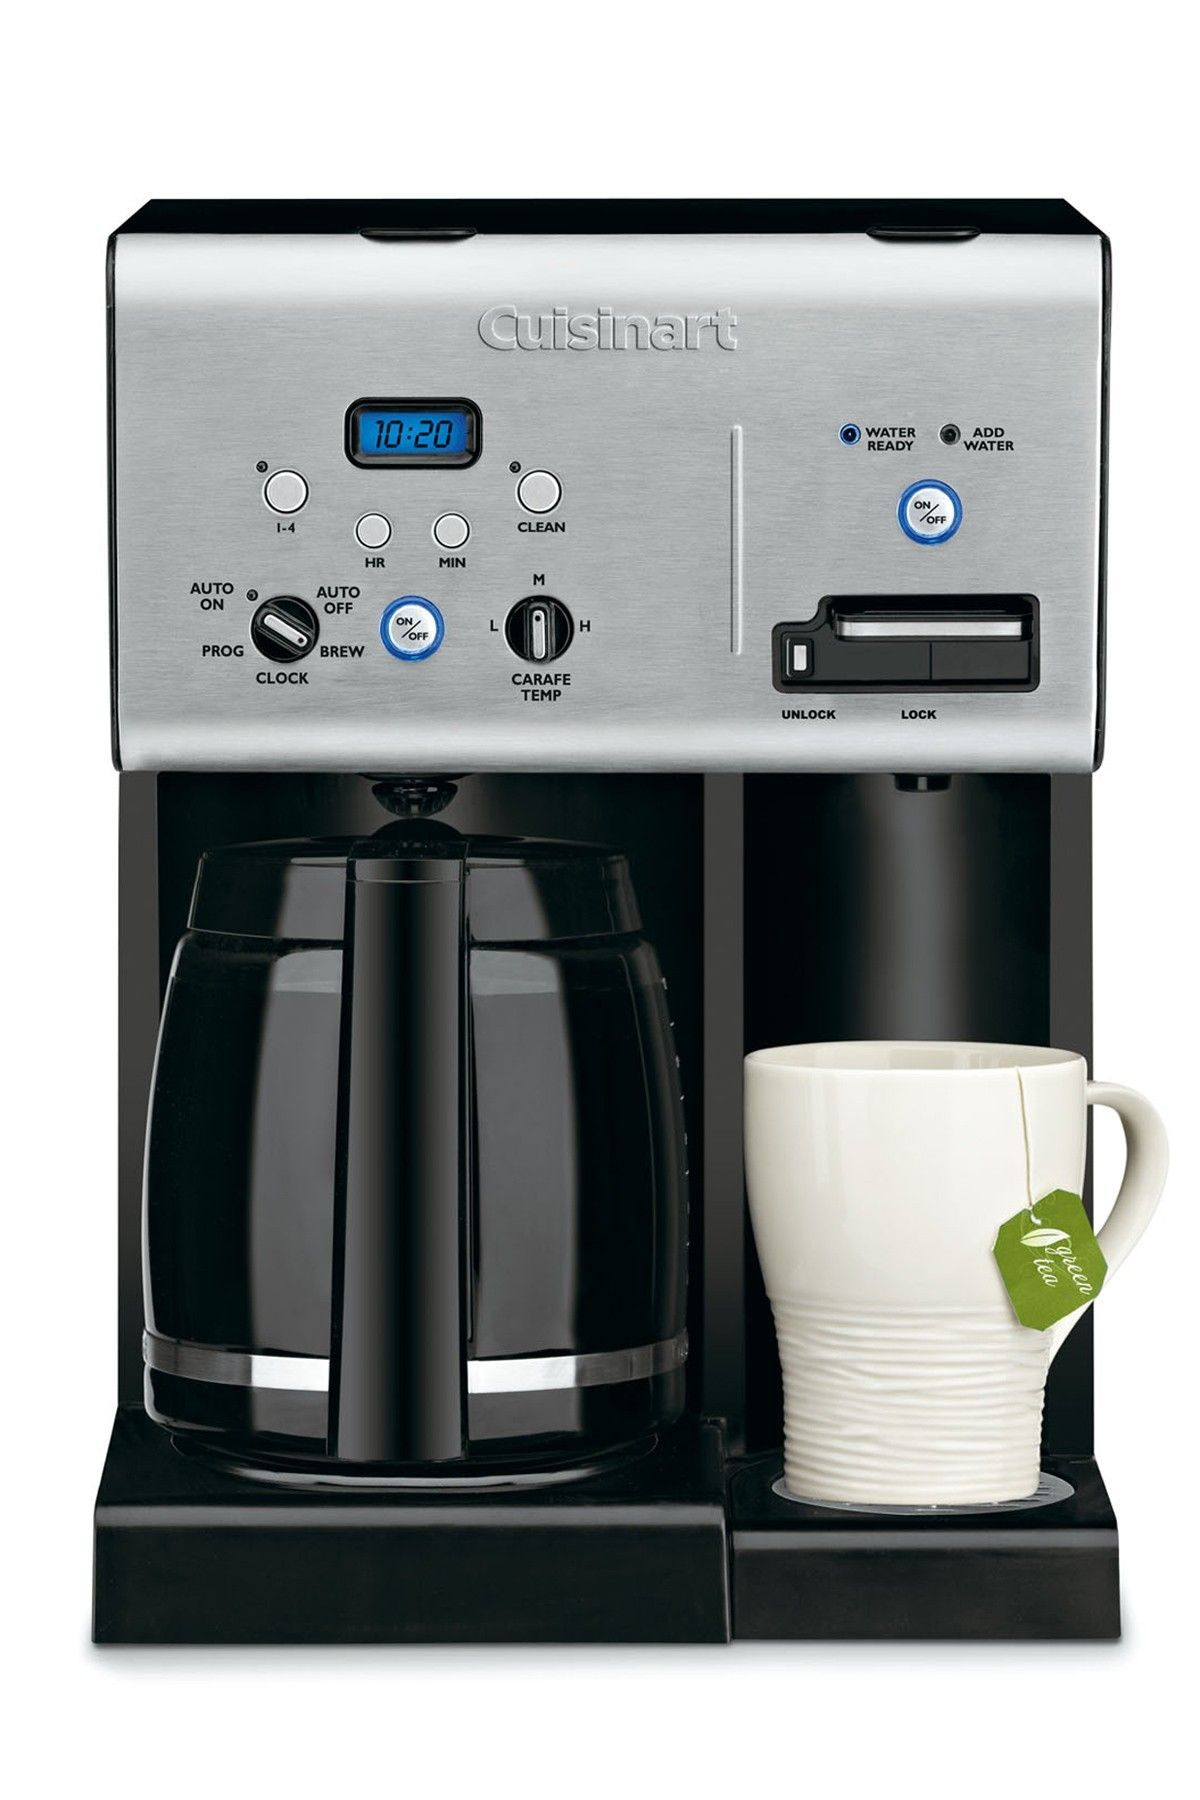 38++ White cuisinart coffee maker with grinder ideas